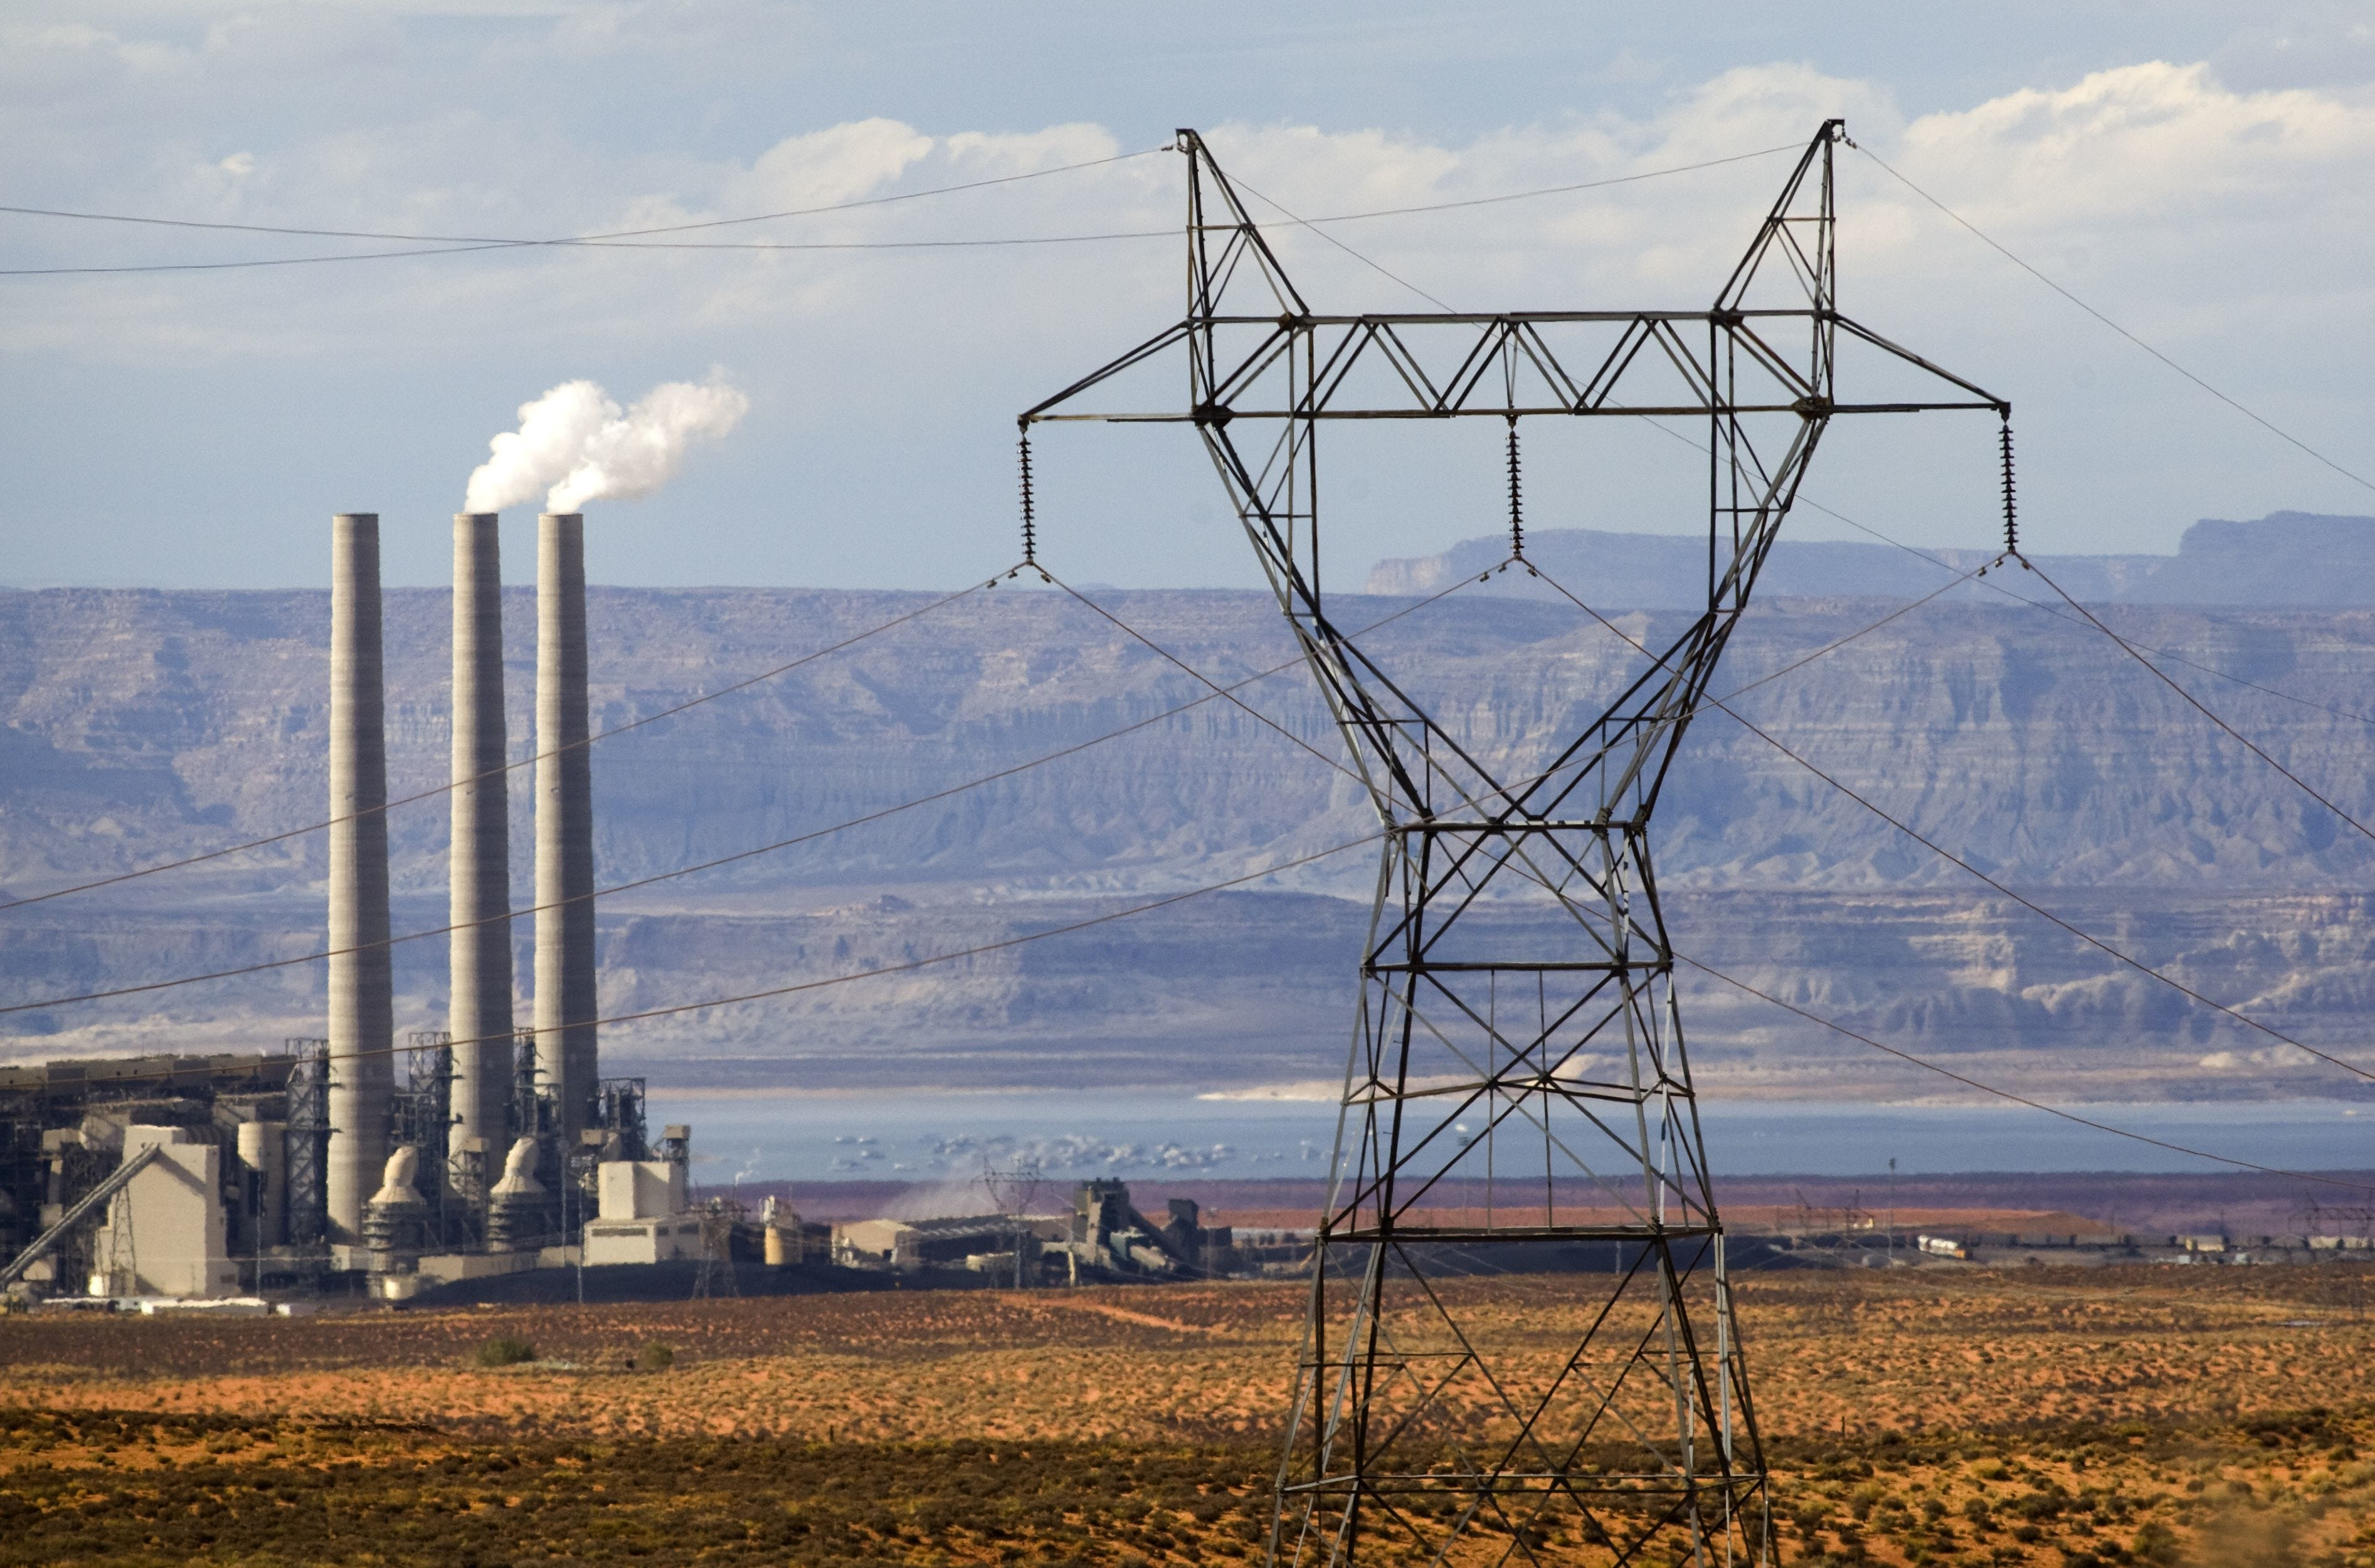 Sale of Navajo Generating Station to new operator falls through